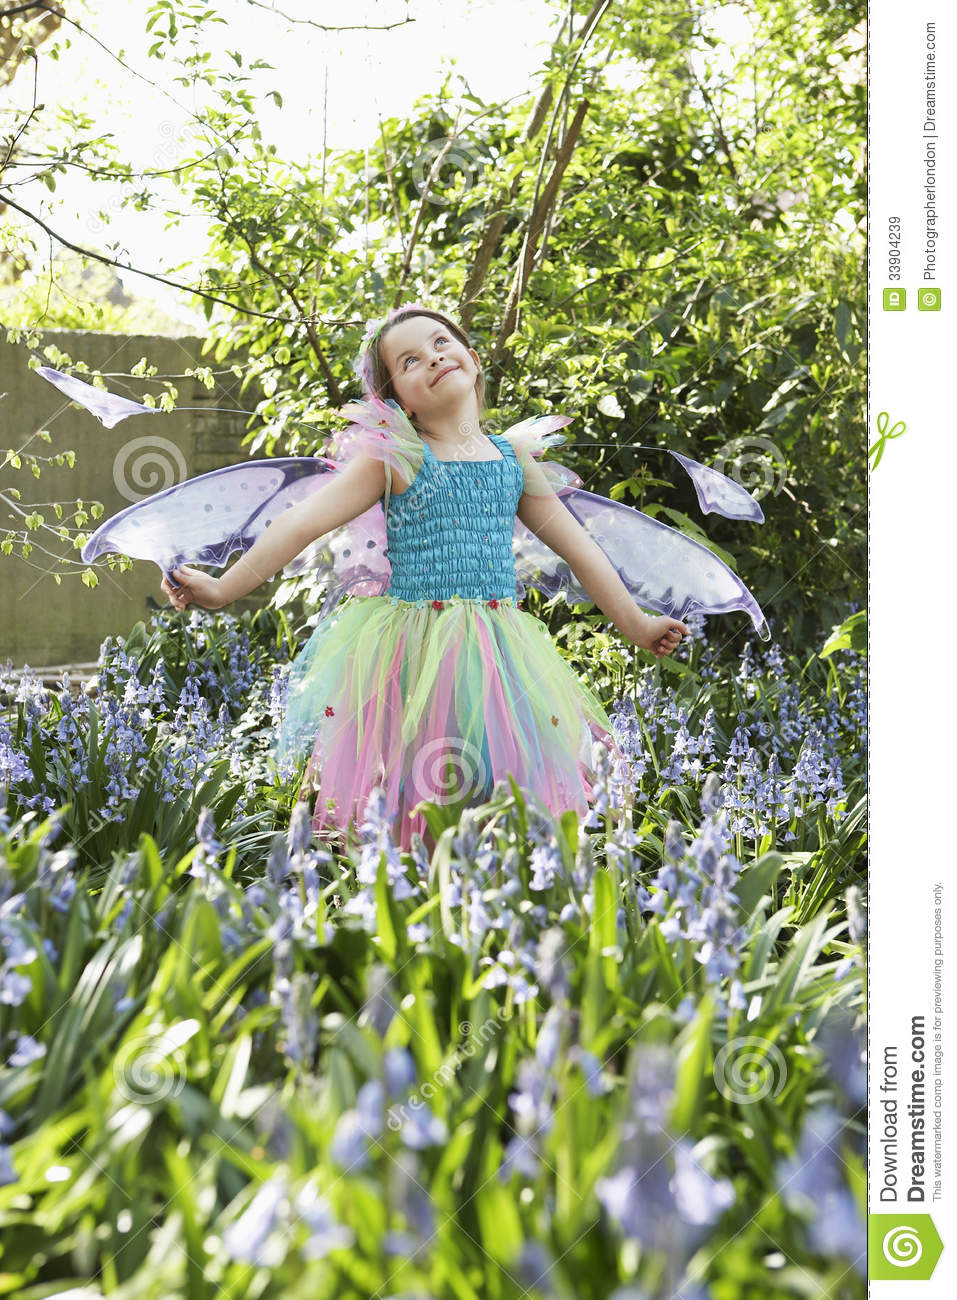 girl in fairy costume at flower garden royalty free stock images image 33904239. Black Bedroom Furniture Sets. Home Design Ideas